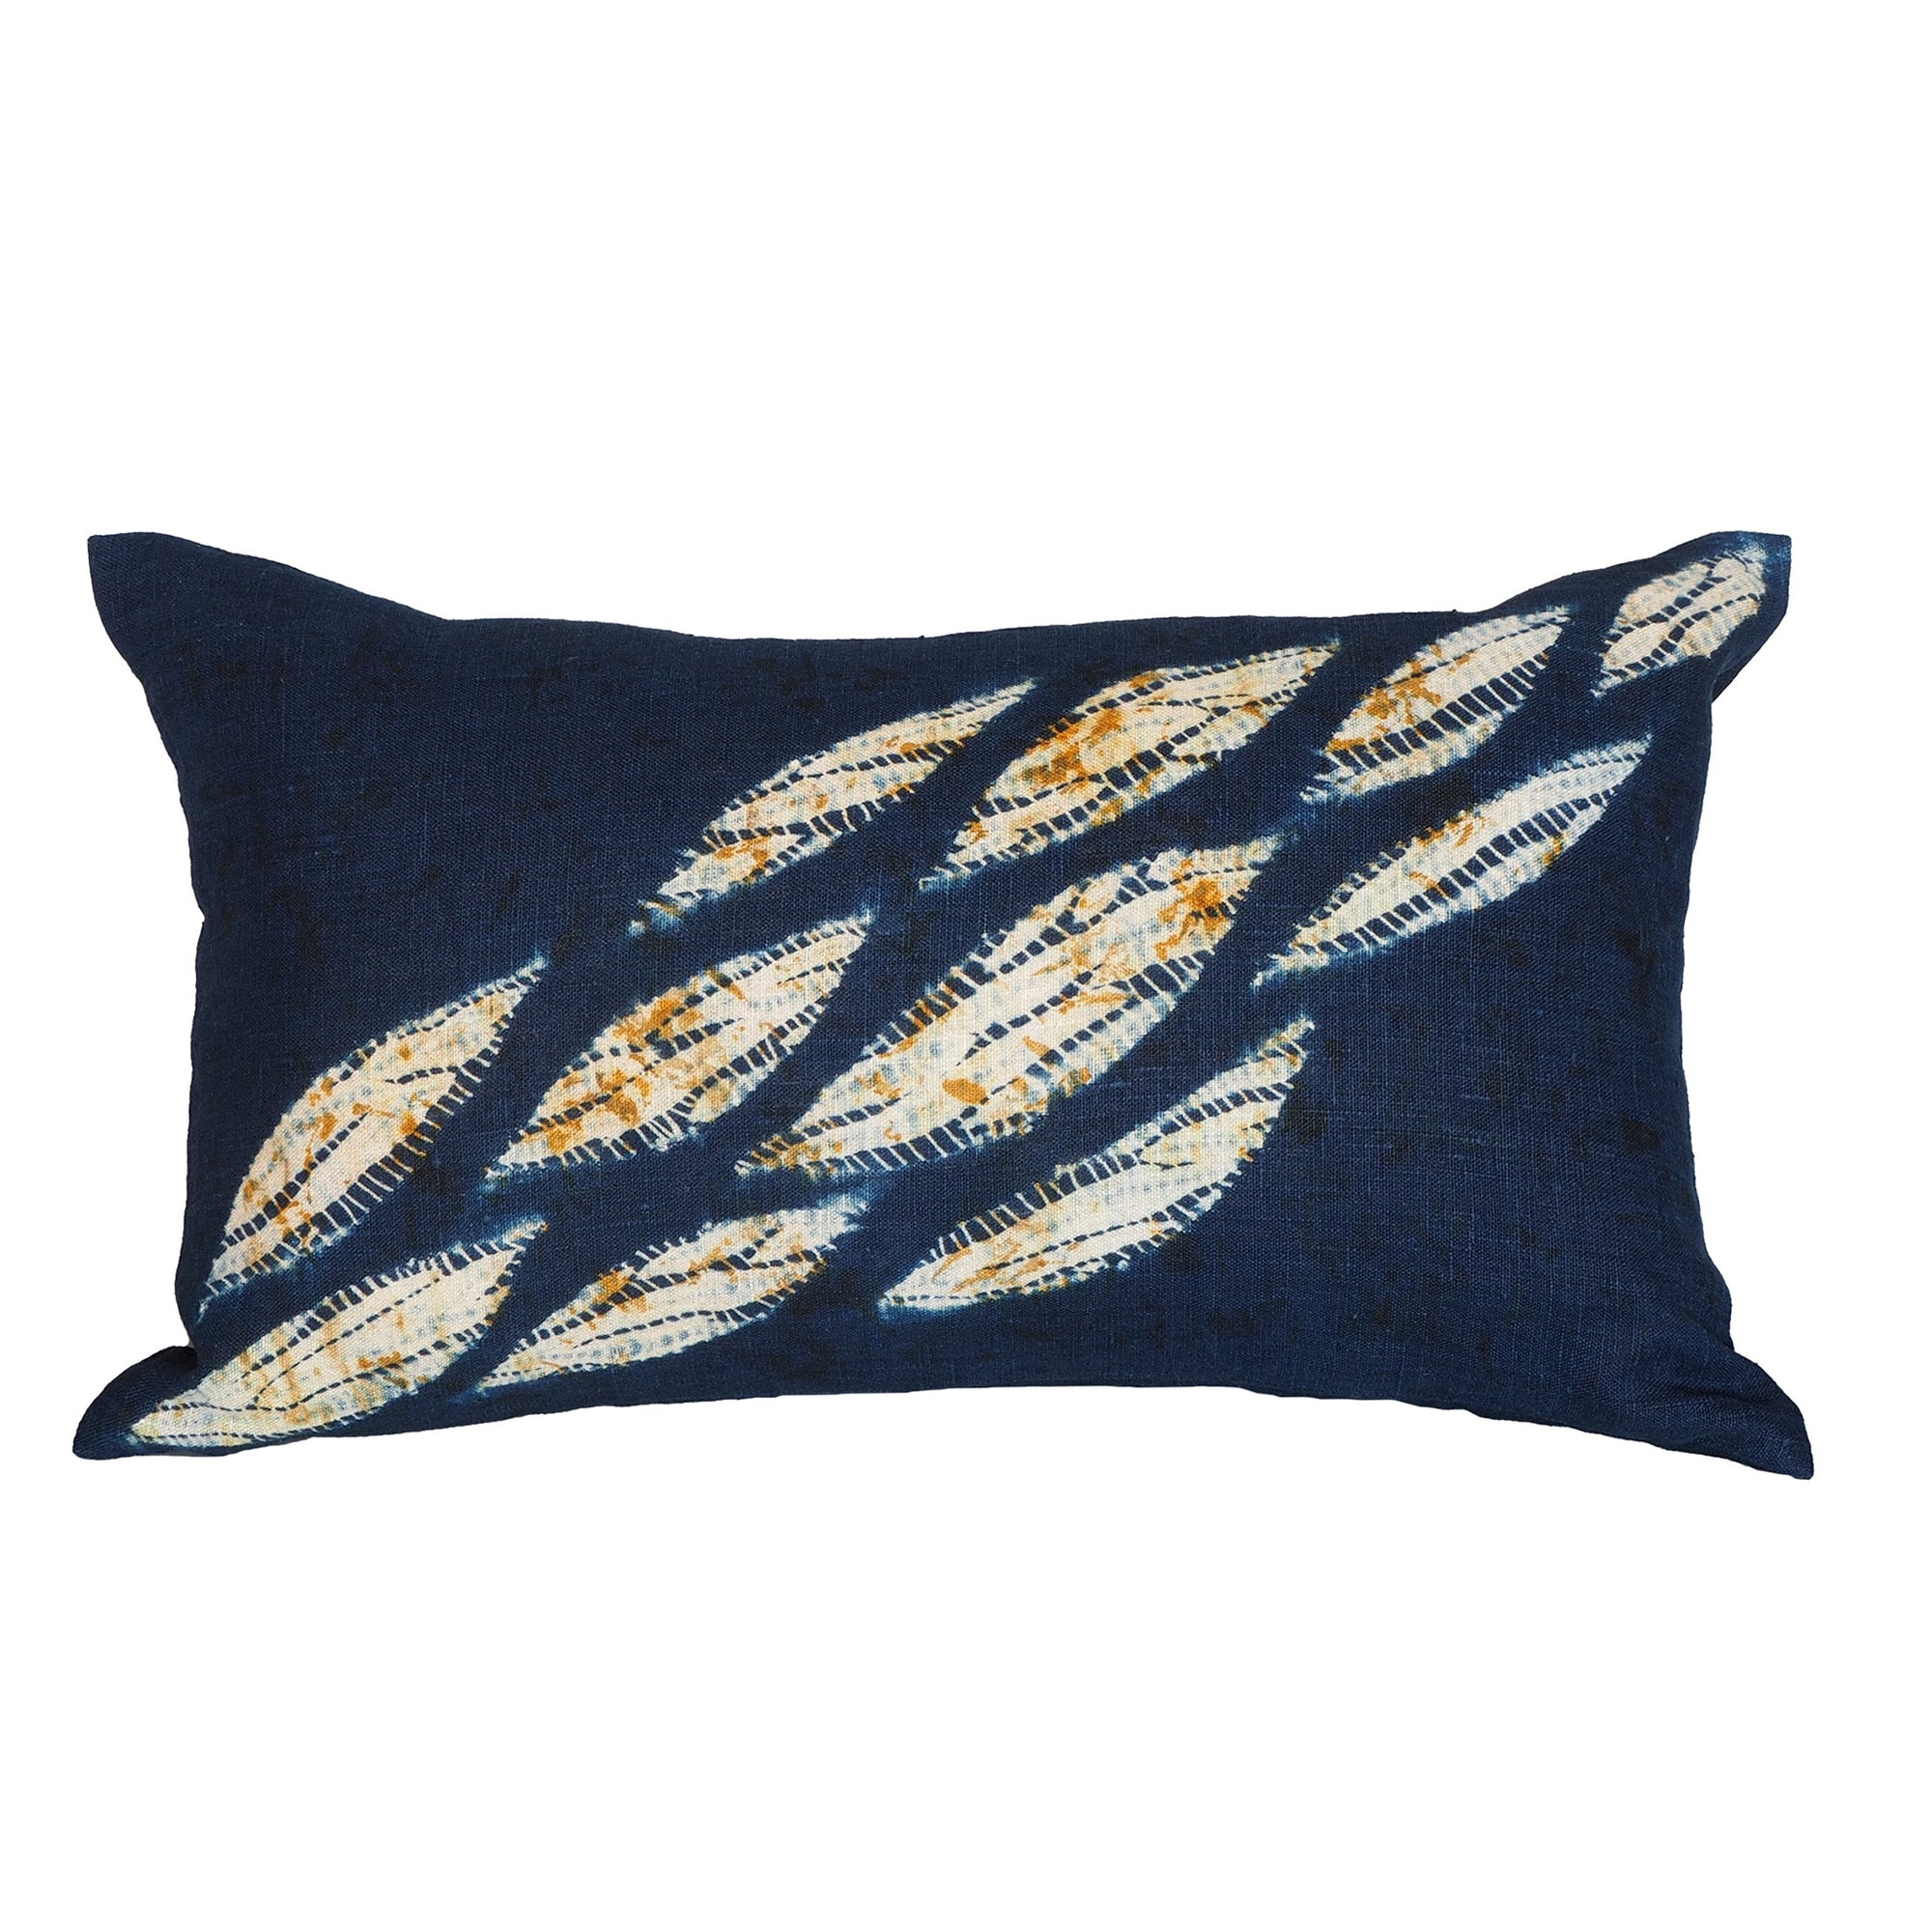 Foliage Pillow Cover